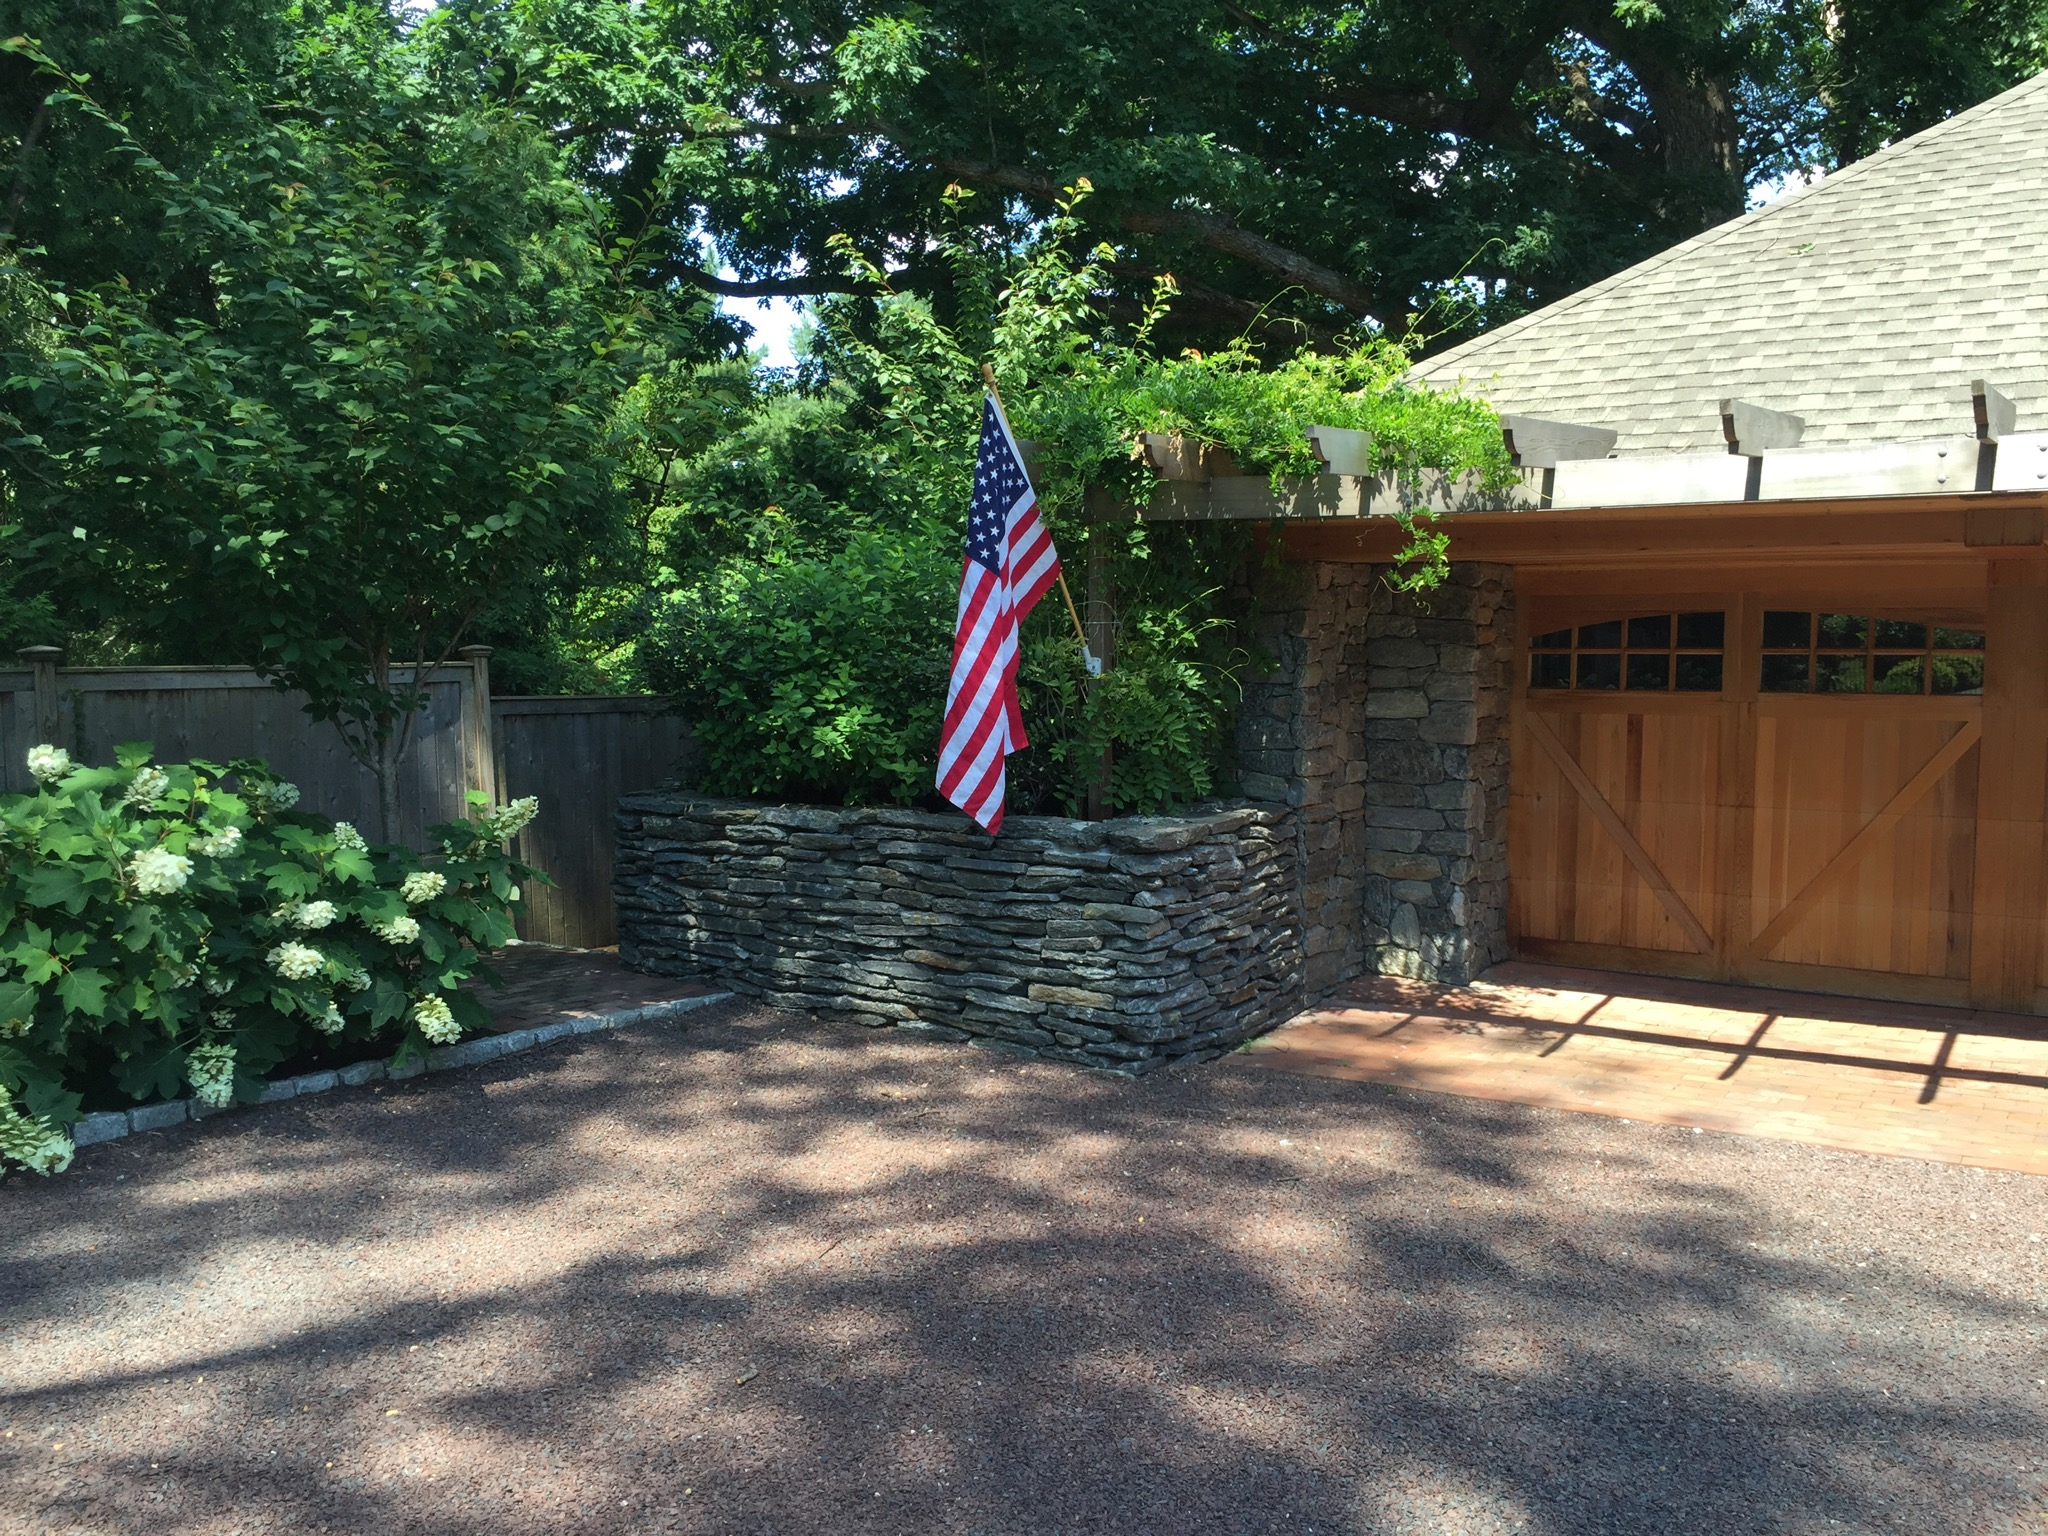 Cedar garage door and pergola, Wissahickon Schist wall & cobblestone edging